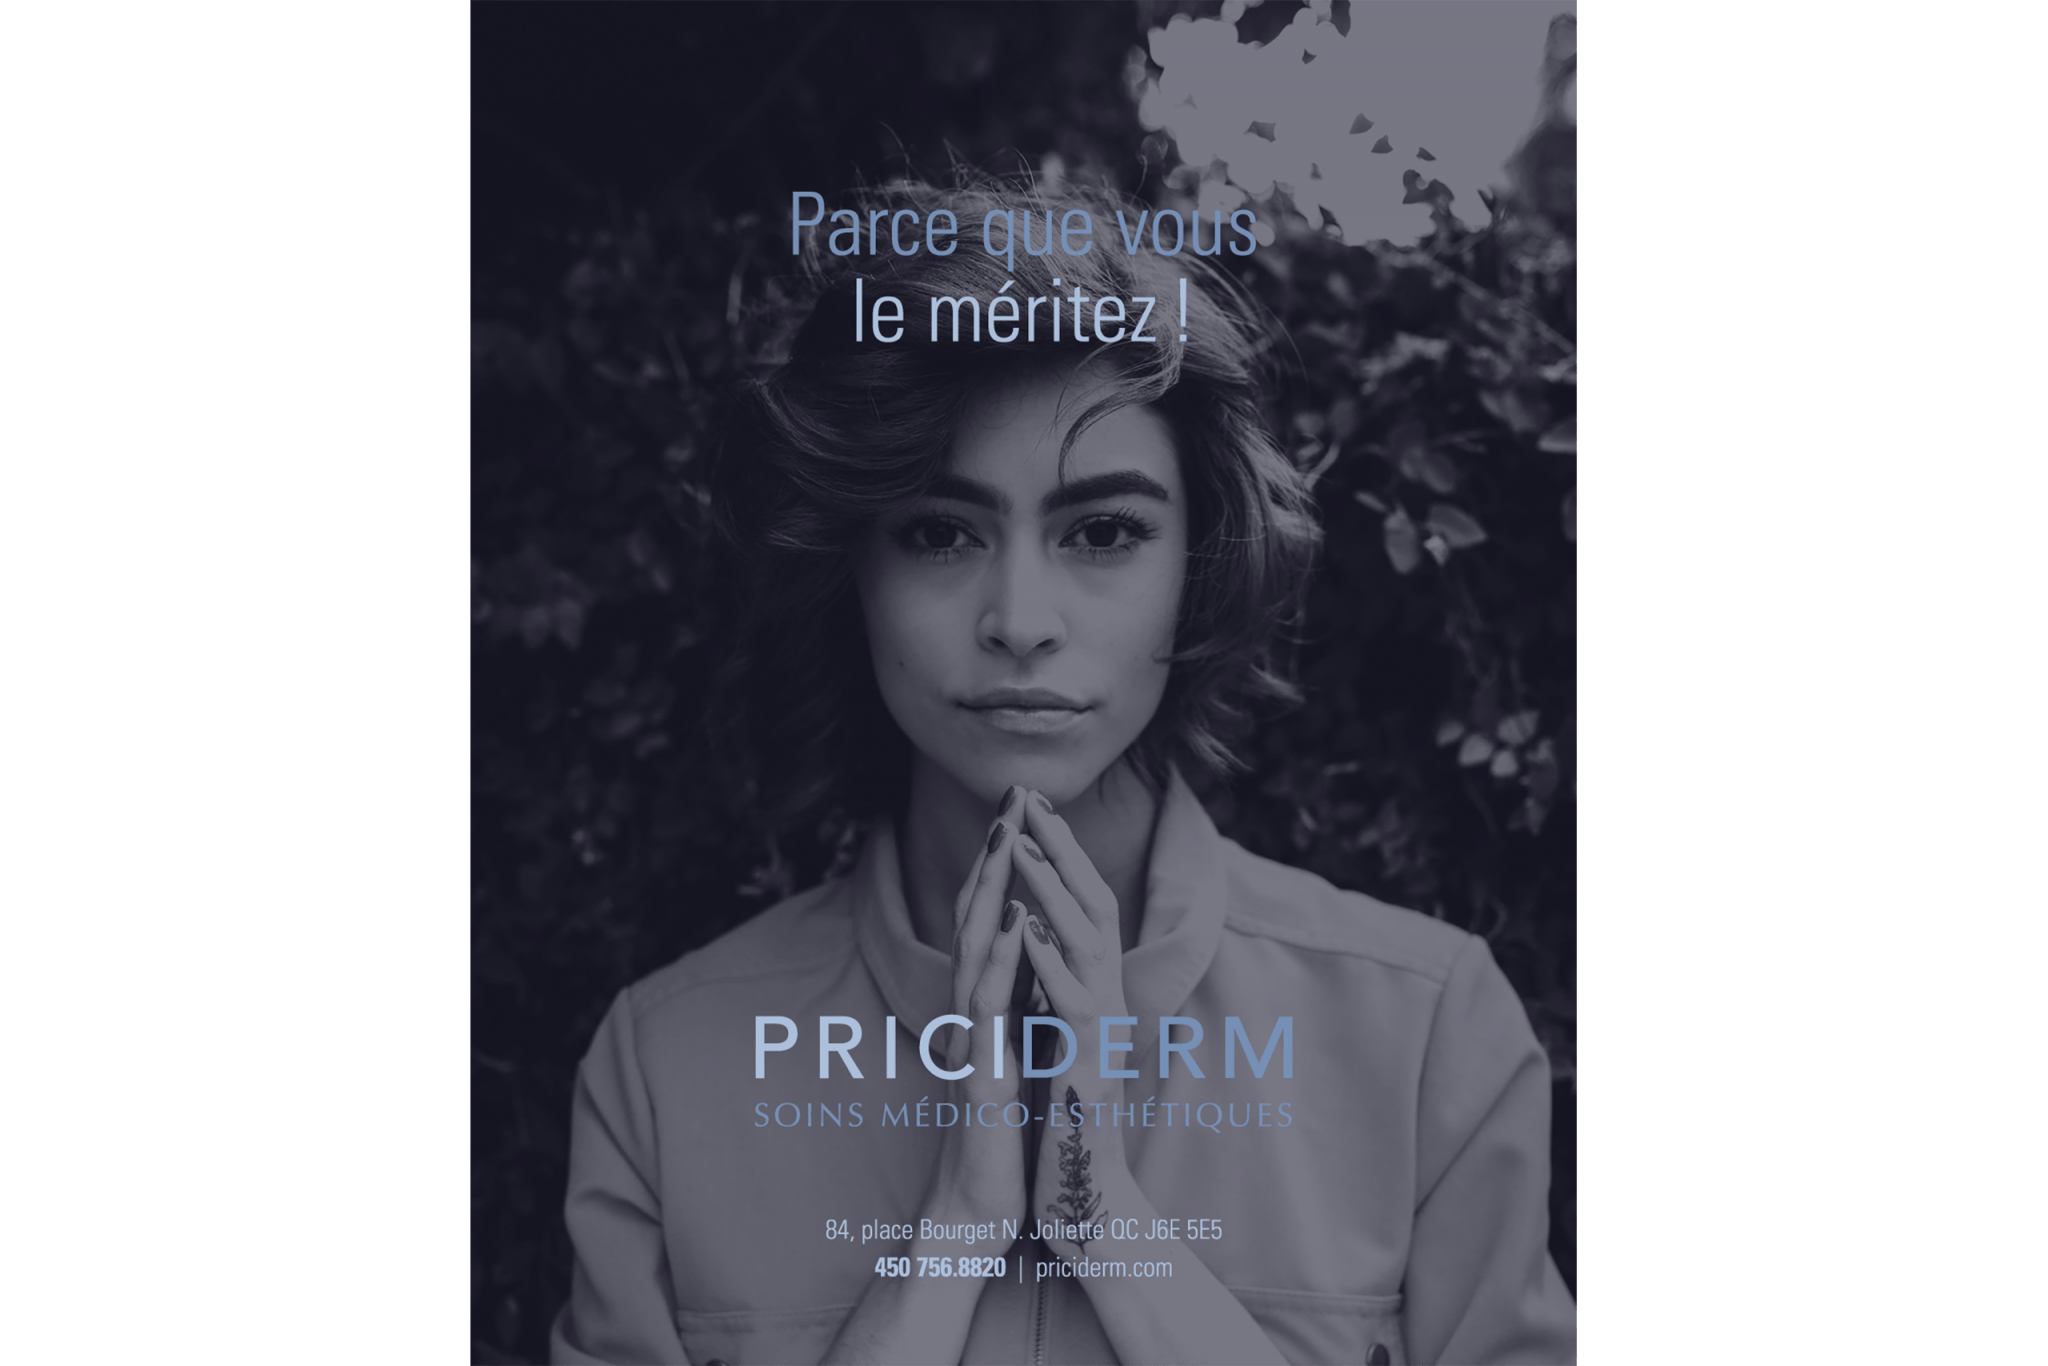 Priciderm_Projets_affiche